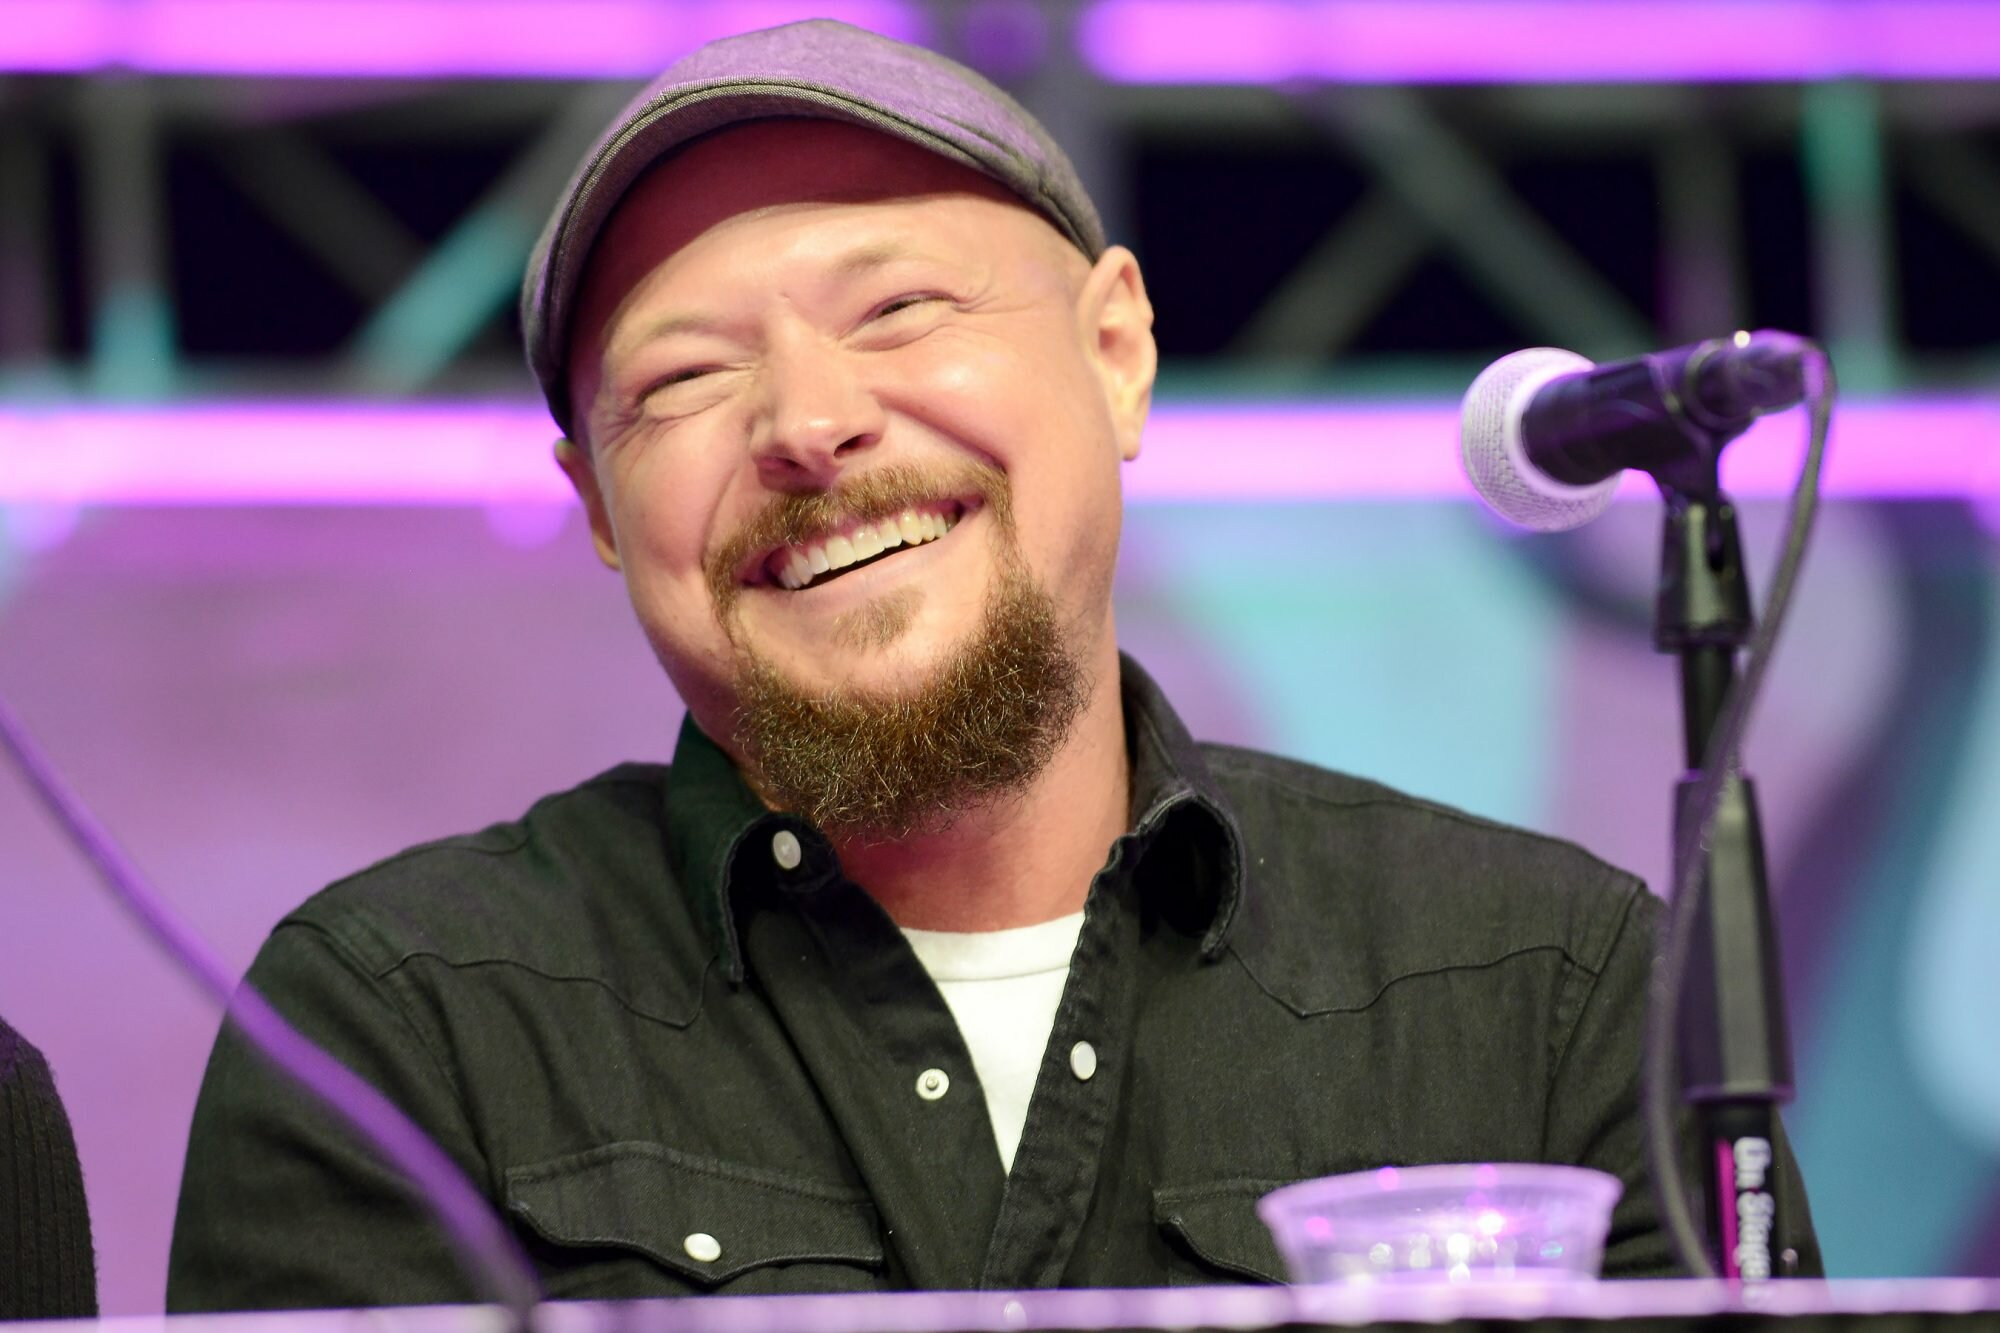 Sabrina The Teenage Witch Star Reveals He S A Janitor Supports Geoffrey Owens People Com Nate richert was born on april 28, 1978 in st. sabrina the teenage witch star reveals